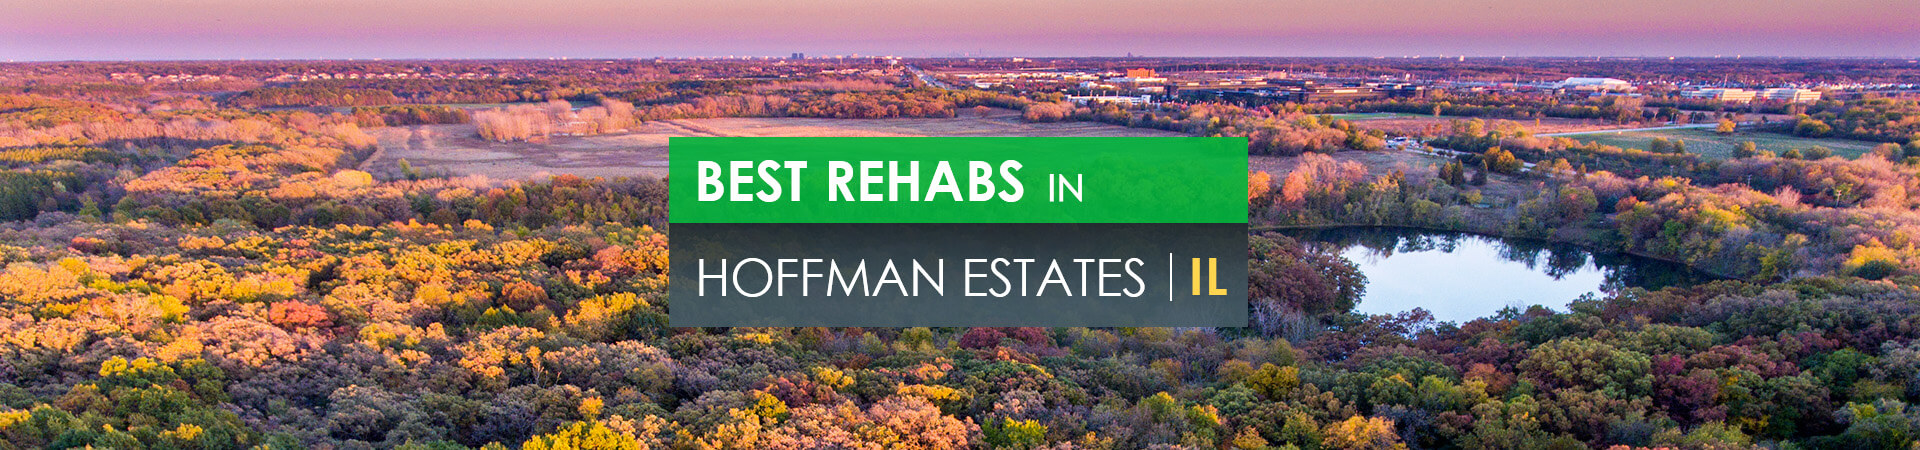 Best rehabs in Hoffman Estates, IL